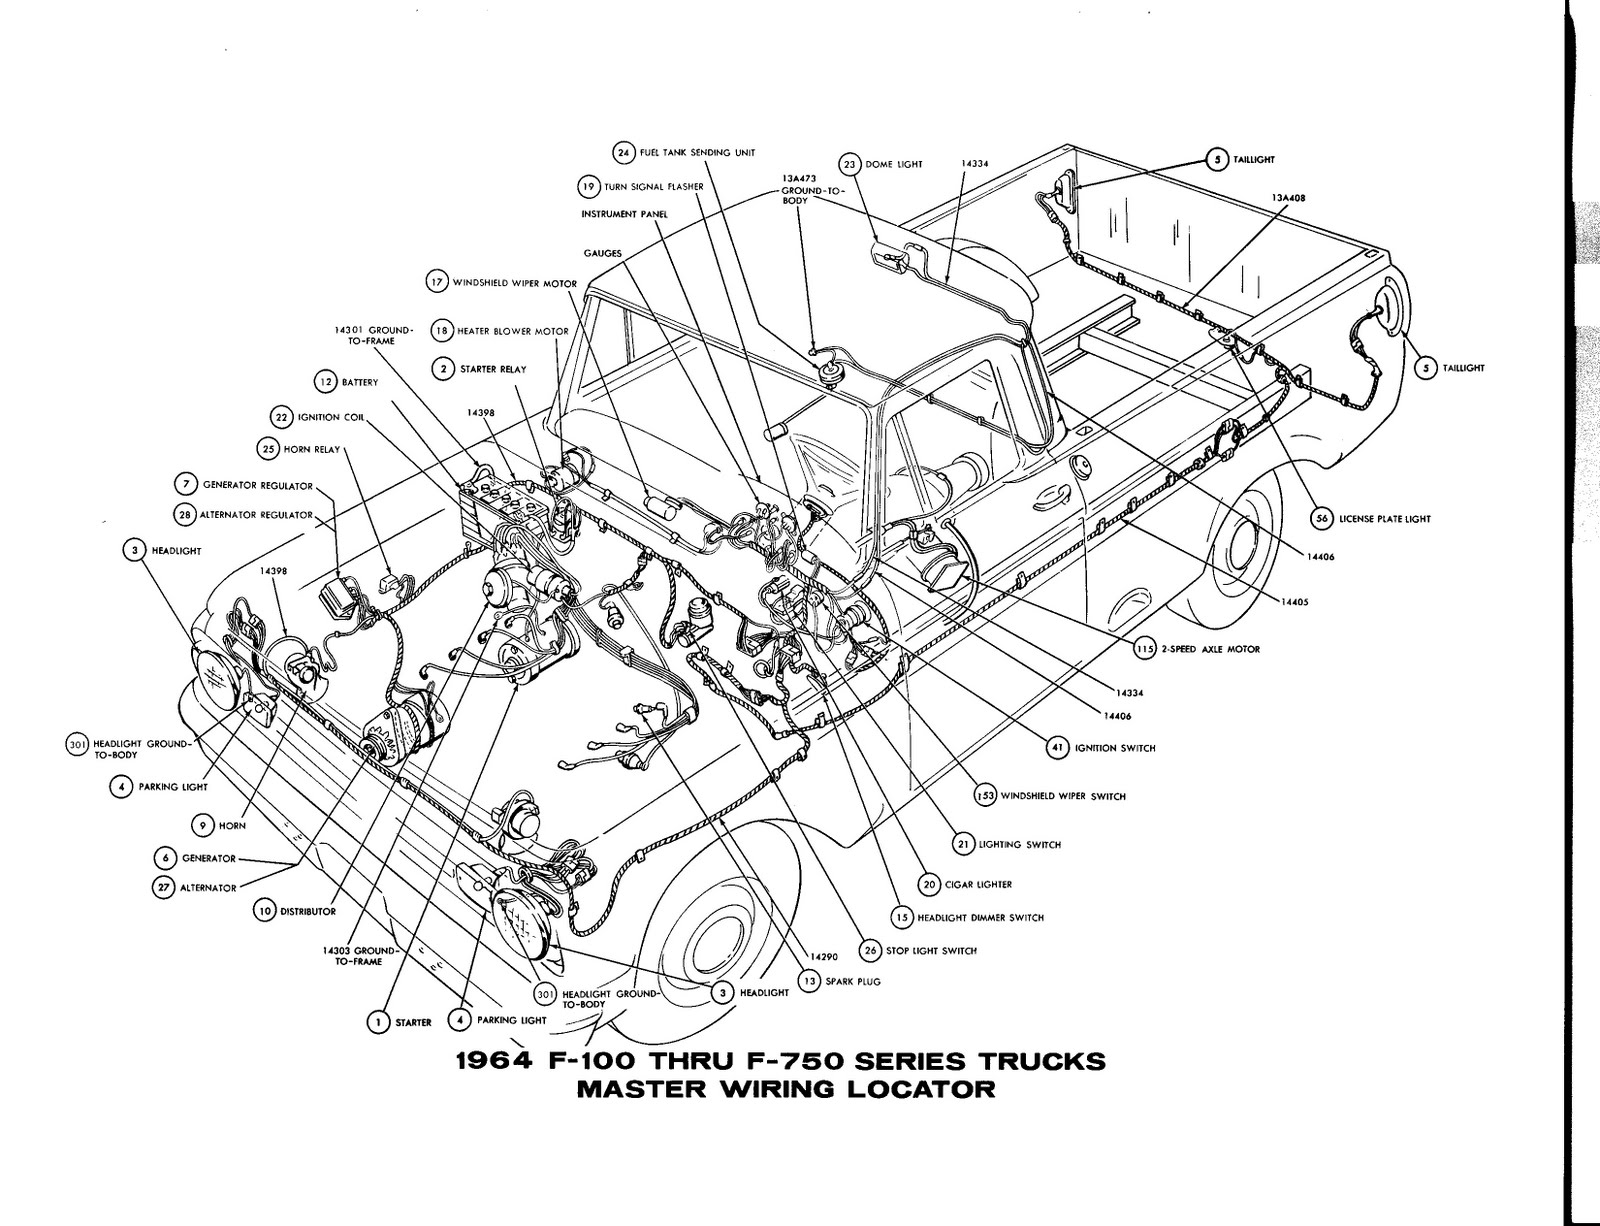 1964 ford f100f750 truck wiring manual ebay